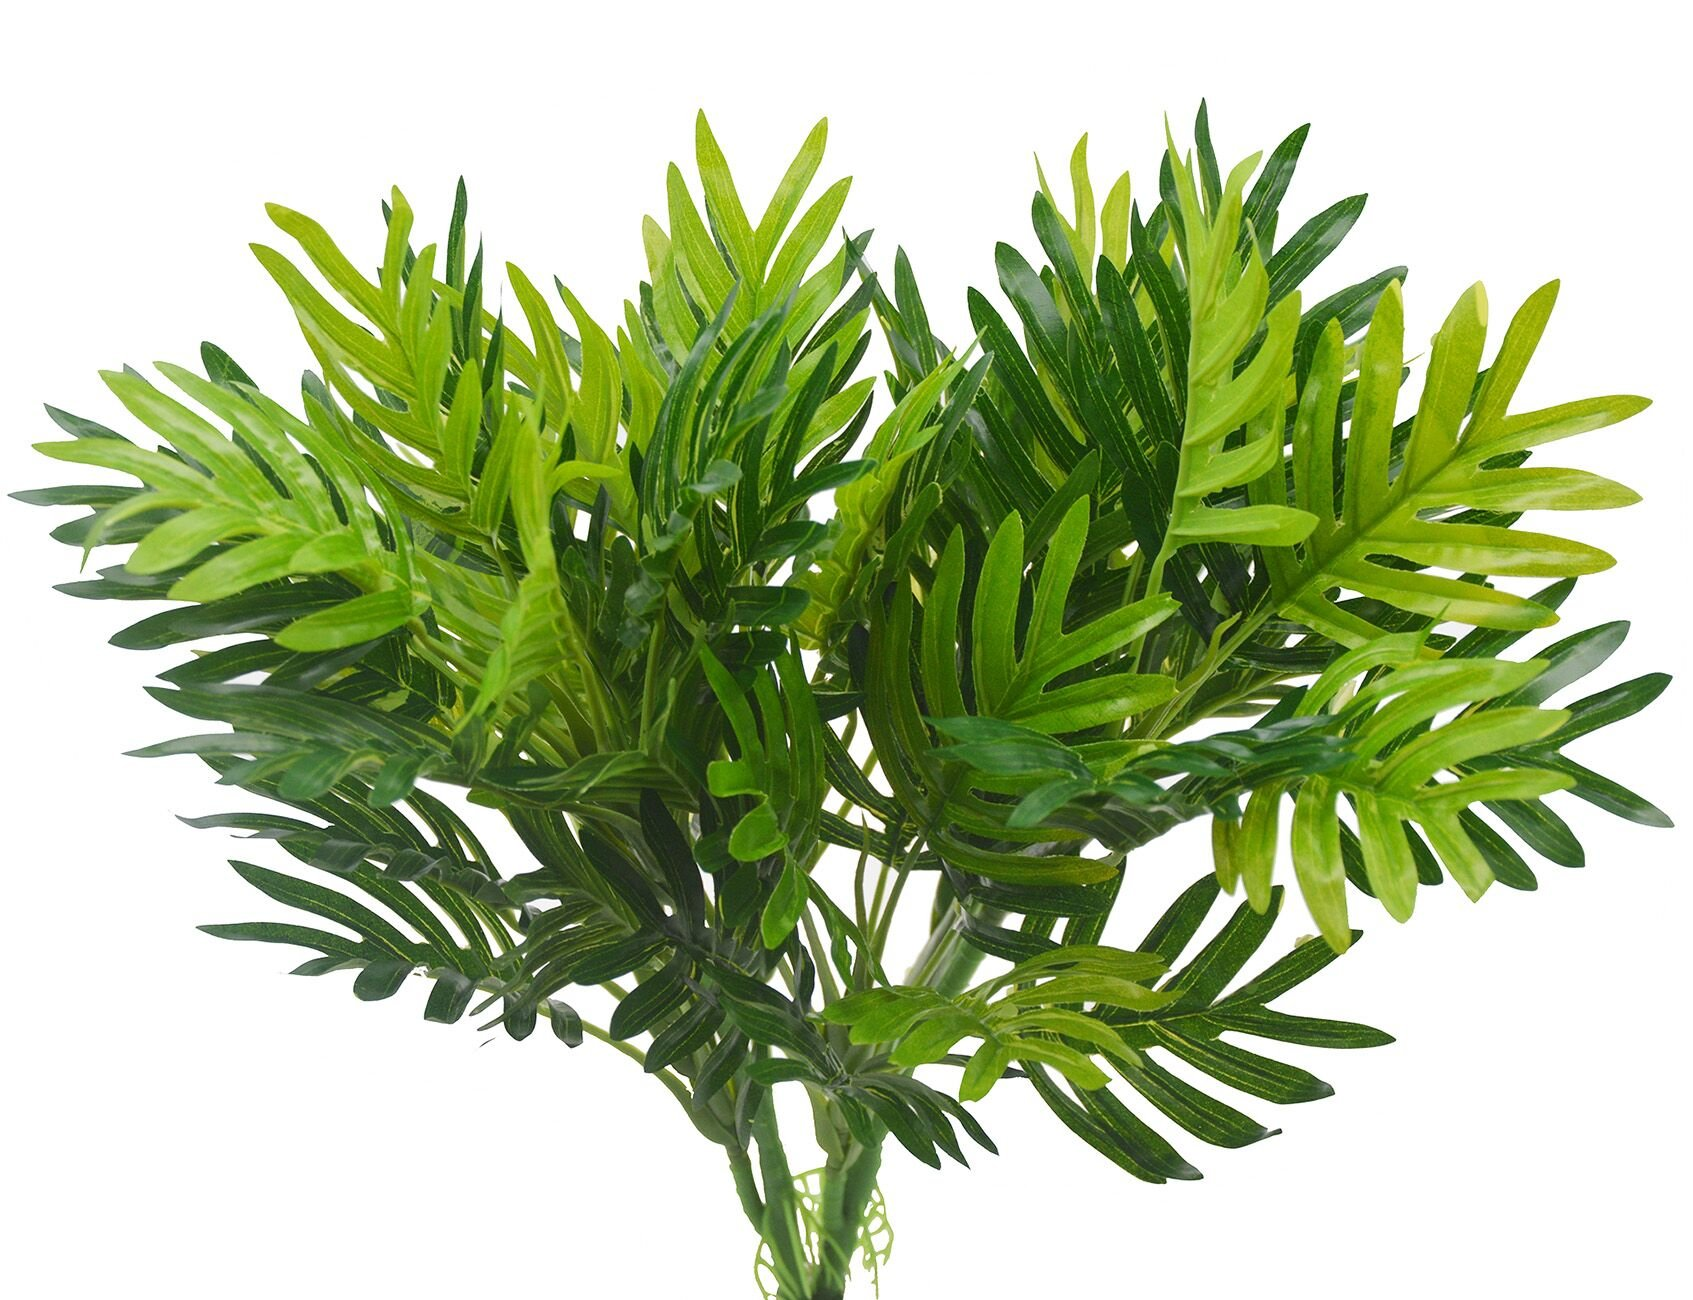 2 pcs Faux Palm Plants Tree Artificial Plants Palm Leaves Greenery Tree for Fake Simulation Greenery Plants Indoor Outside Home Garden Office Home Wedding Décor